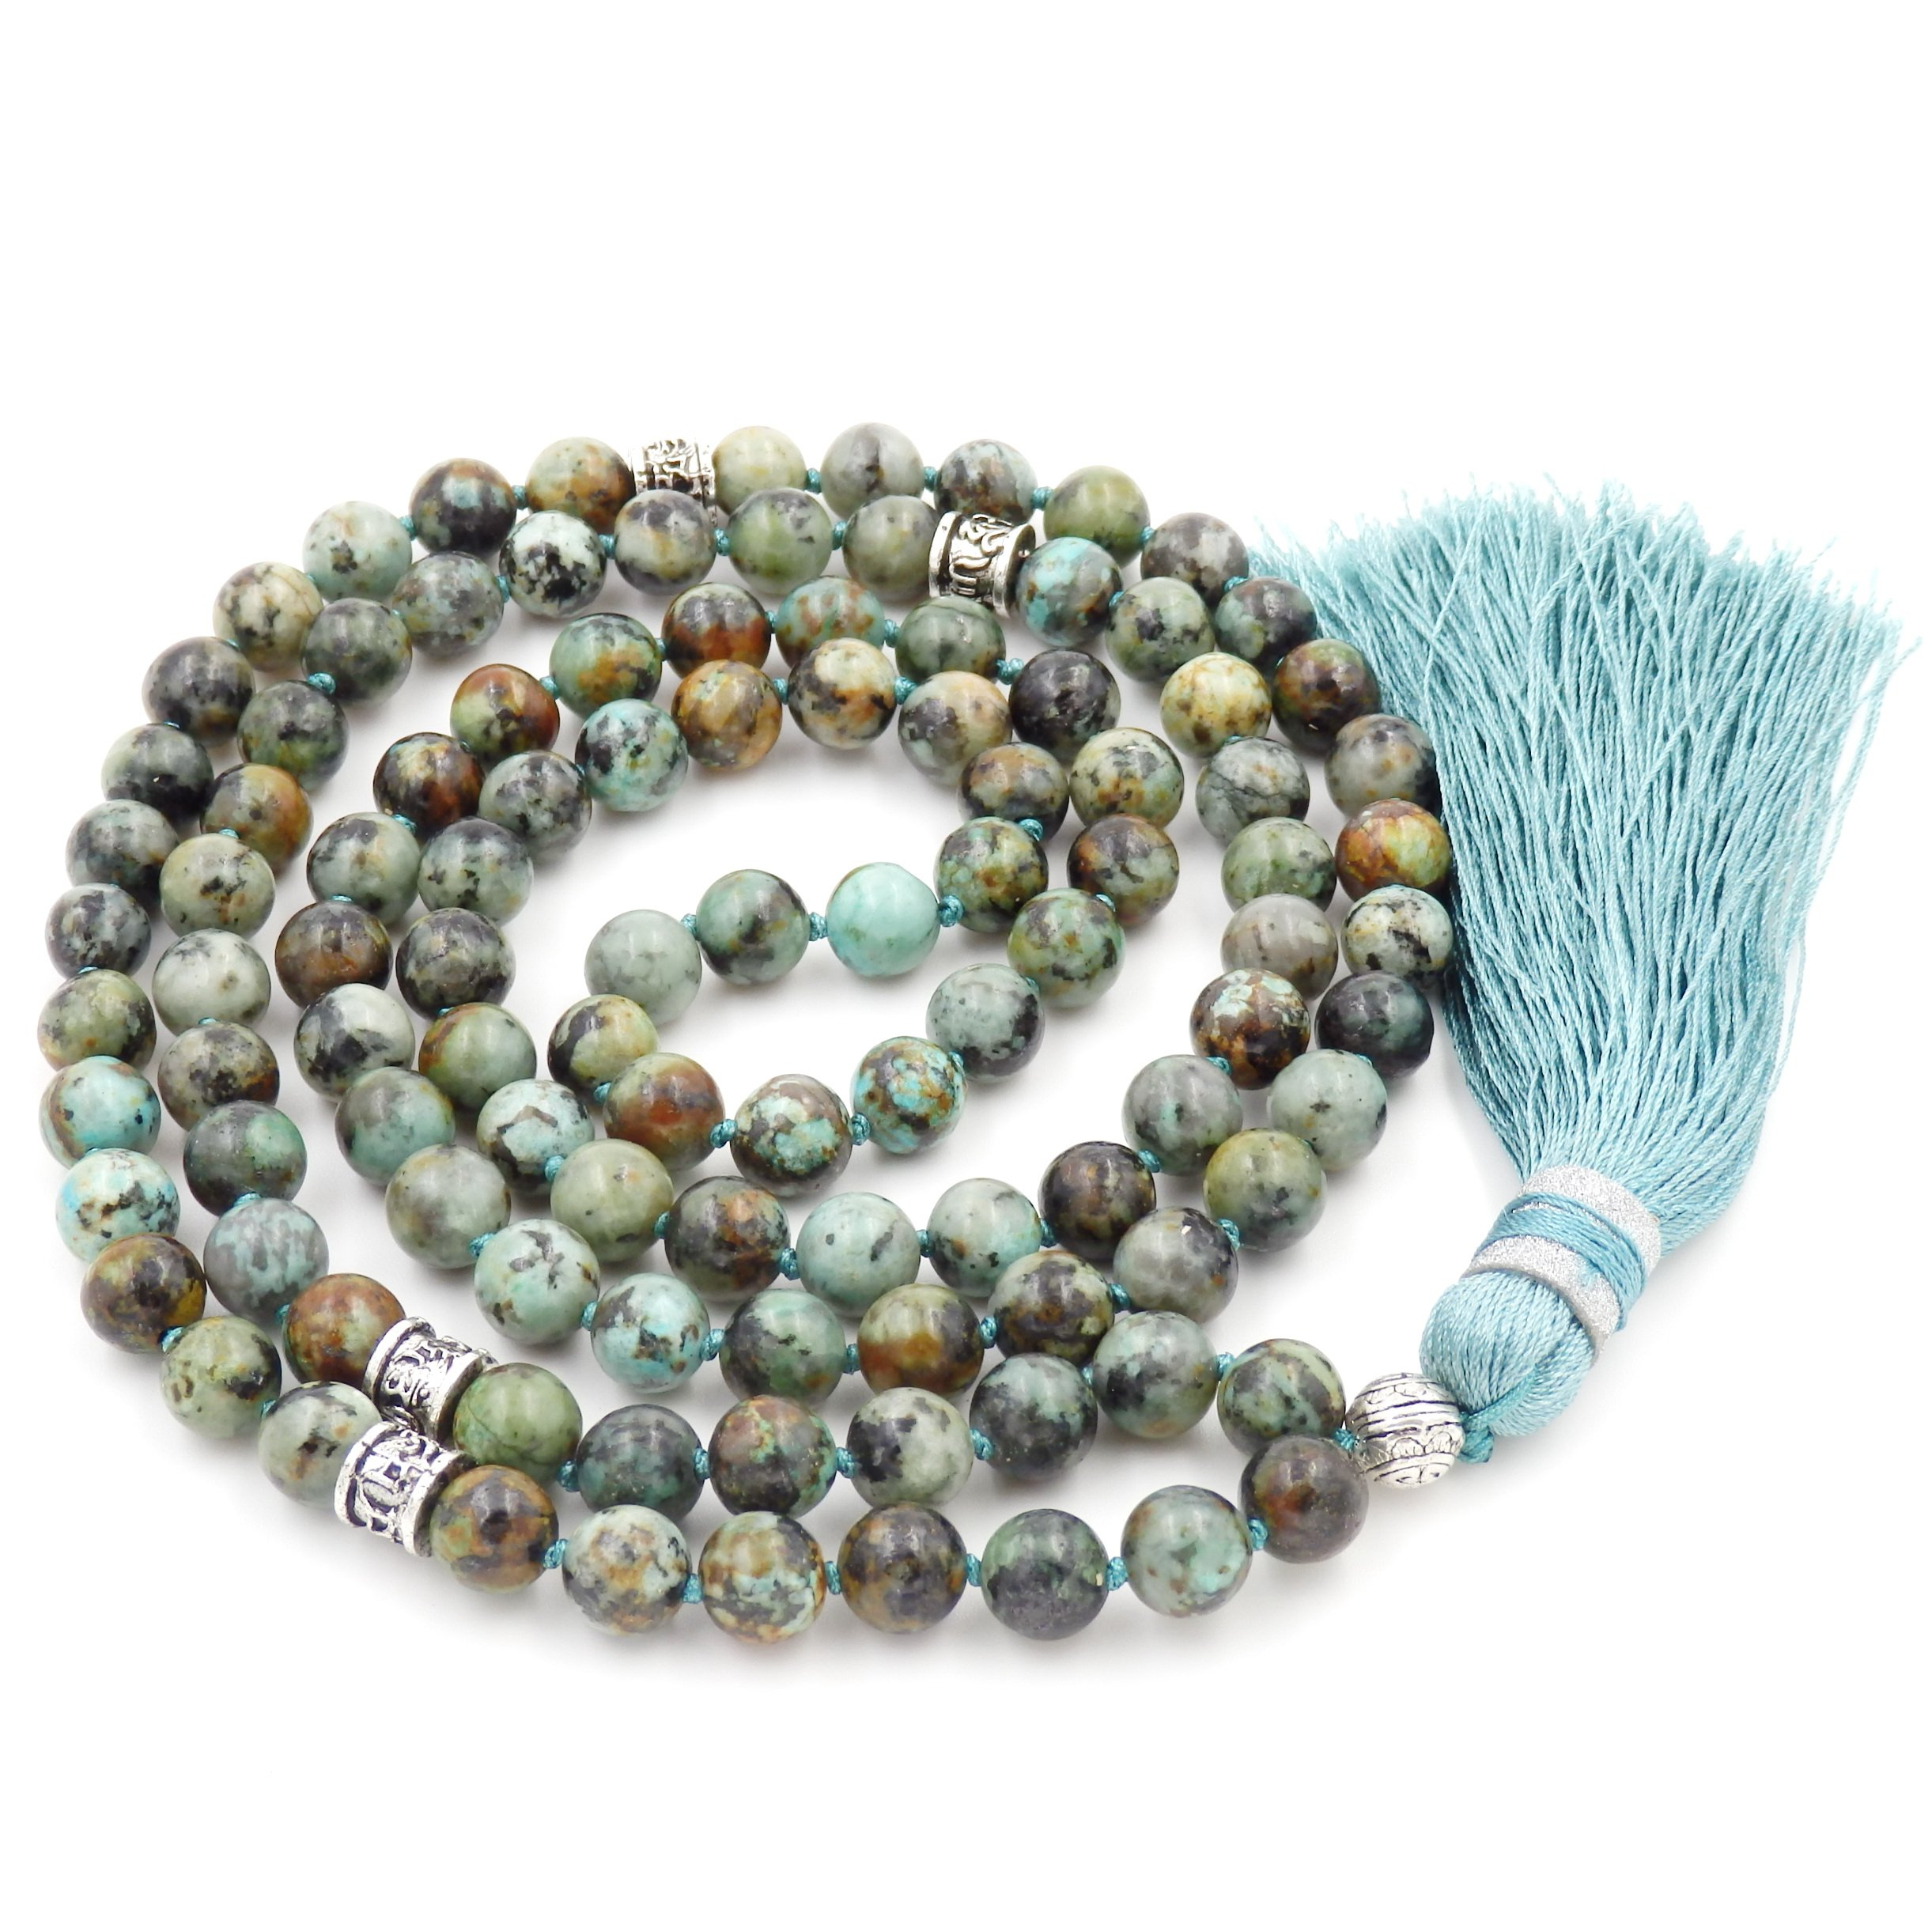 Gemstone Mala Beads Necklace, Mala Bracelet, Buddha Necklace, Hand Knotted Mala (African Turquoise) by Malahill